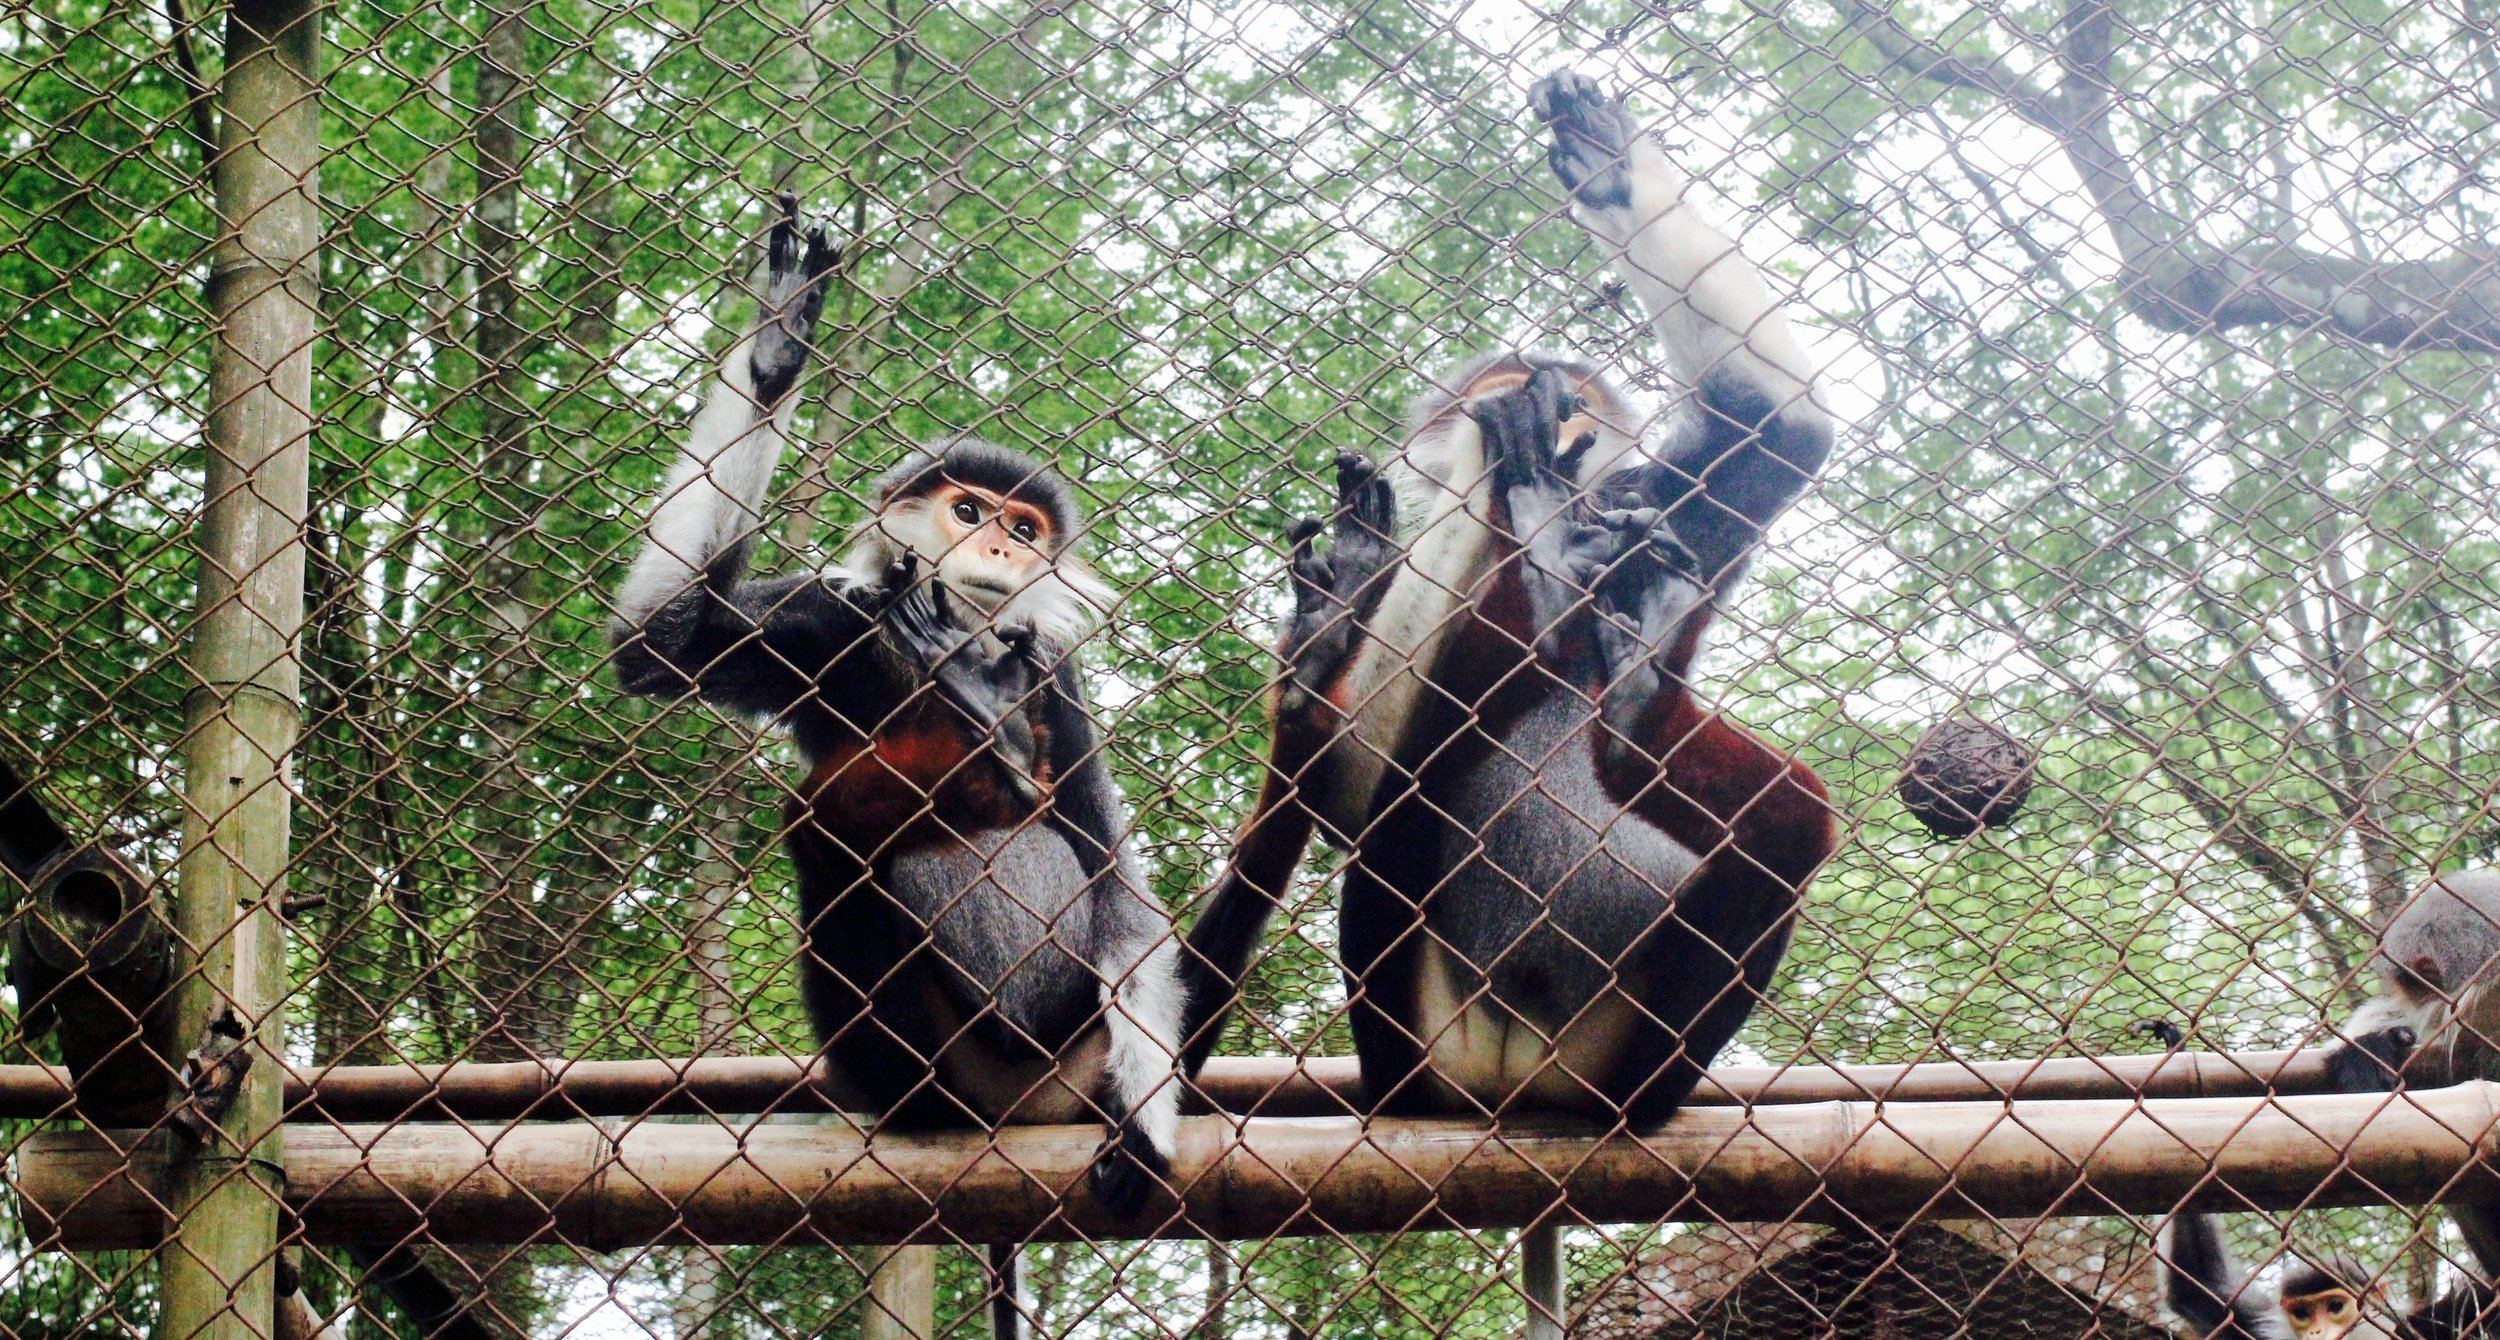 Langurs at the Primate Rescue Center